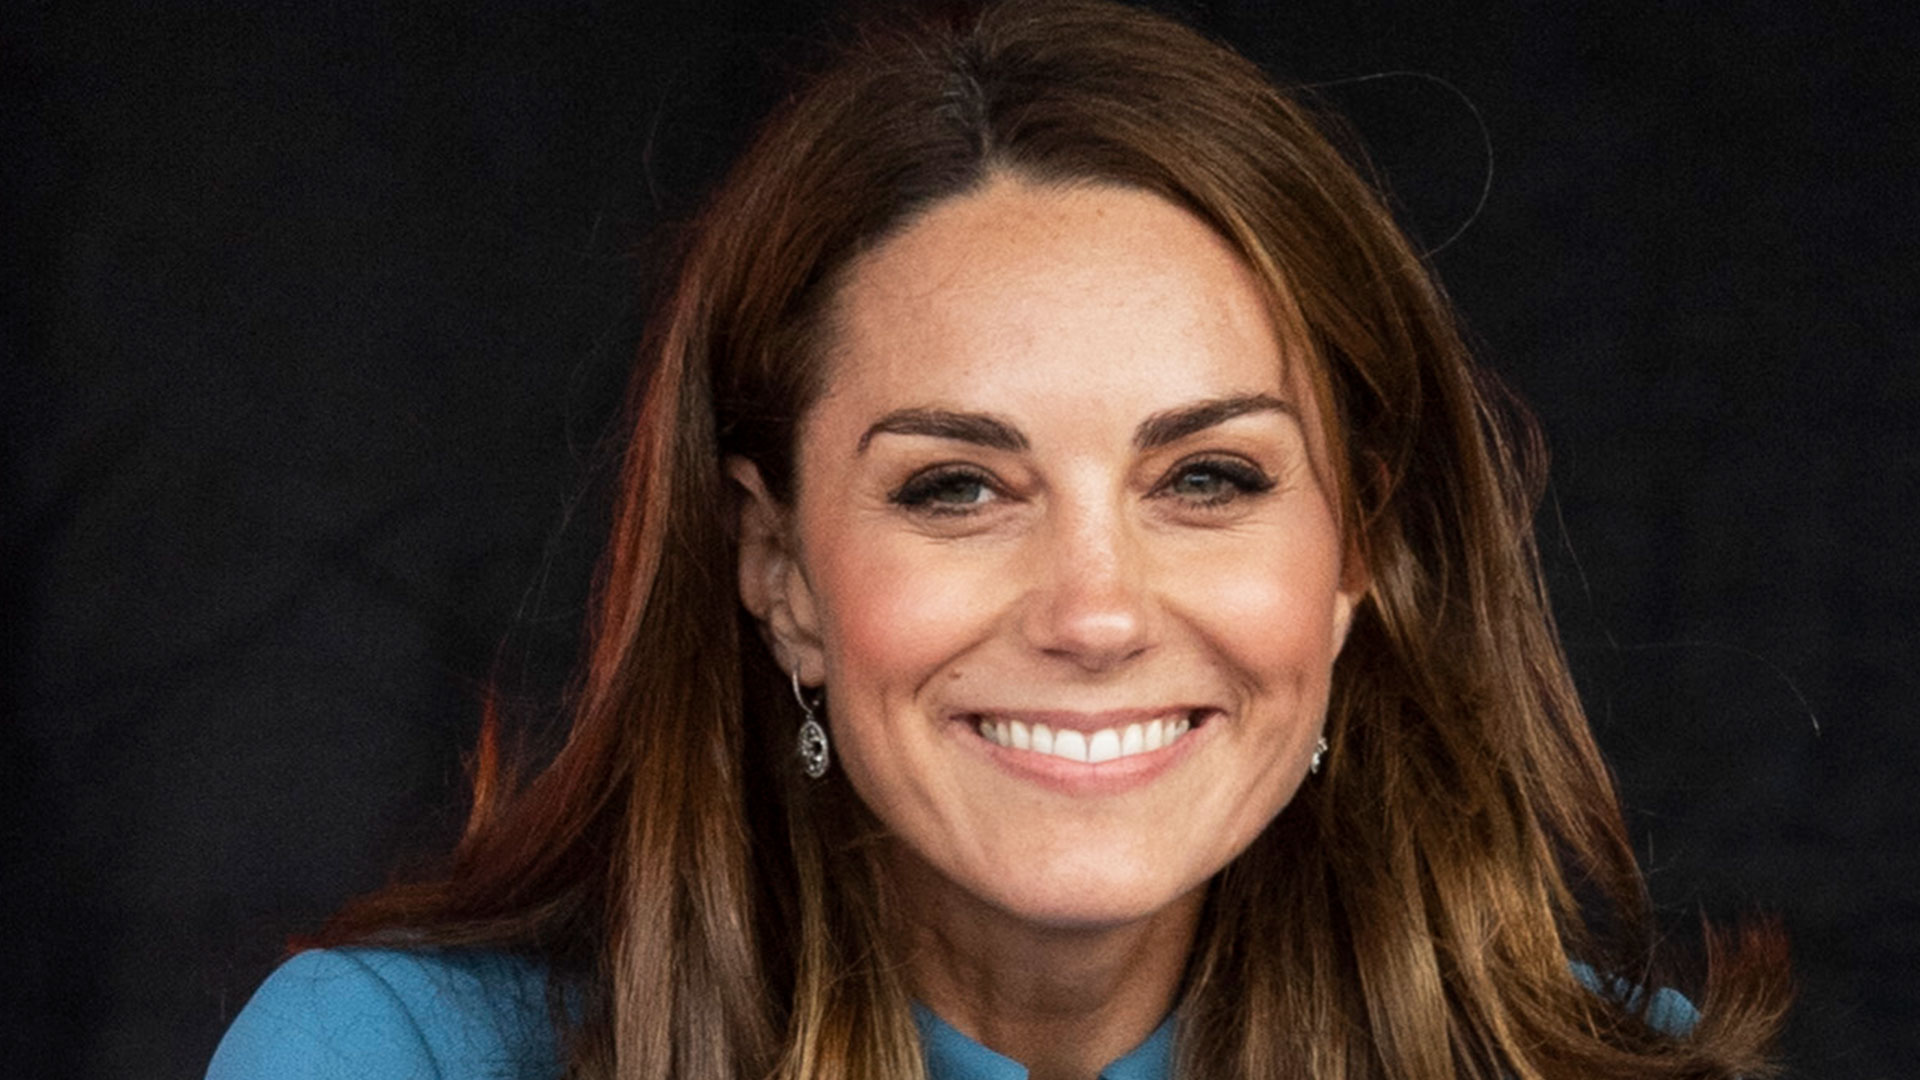 Kate speaks about life under lockdown as she launches photography project